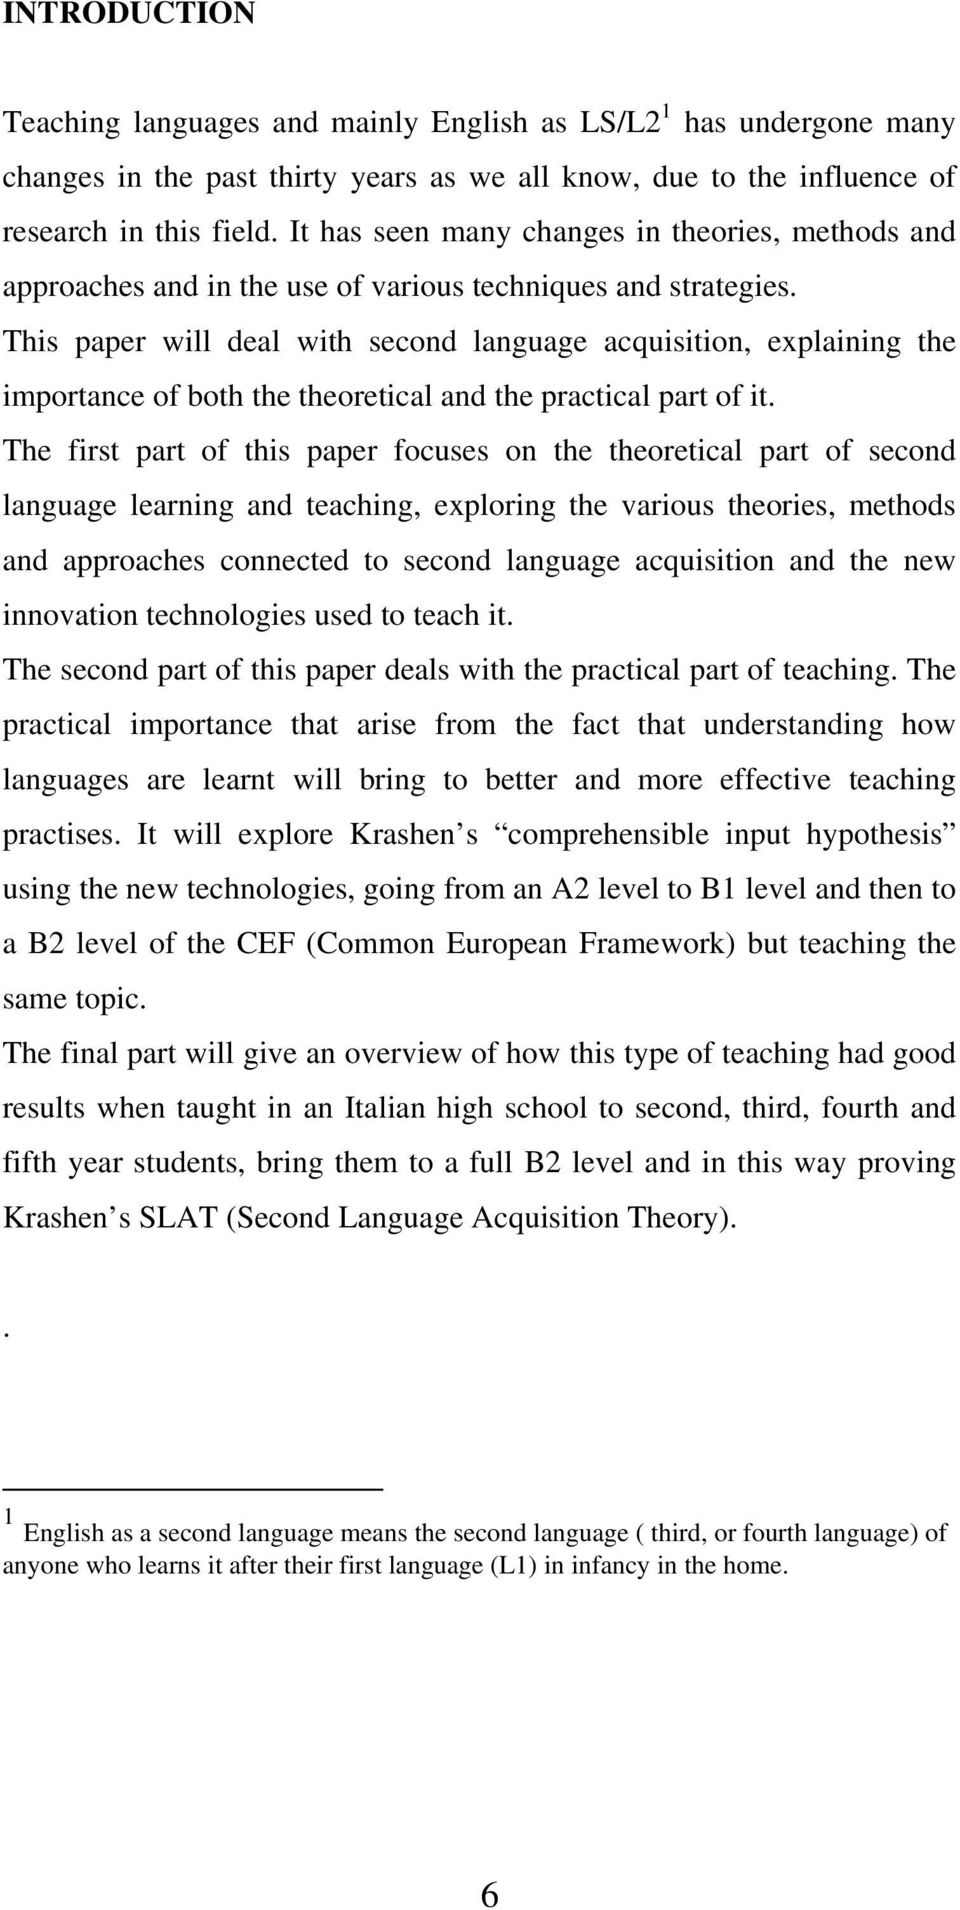 This paper will deal with second language acquisition, explaining the importance of both the theoretical and the practical part of it.